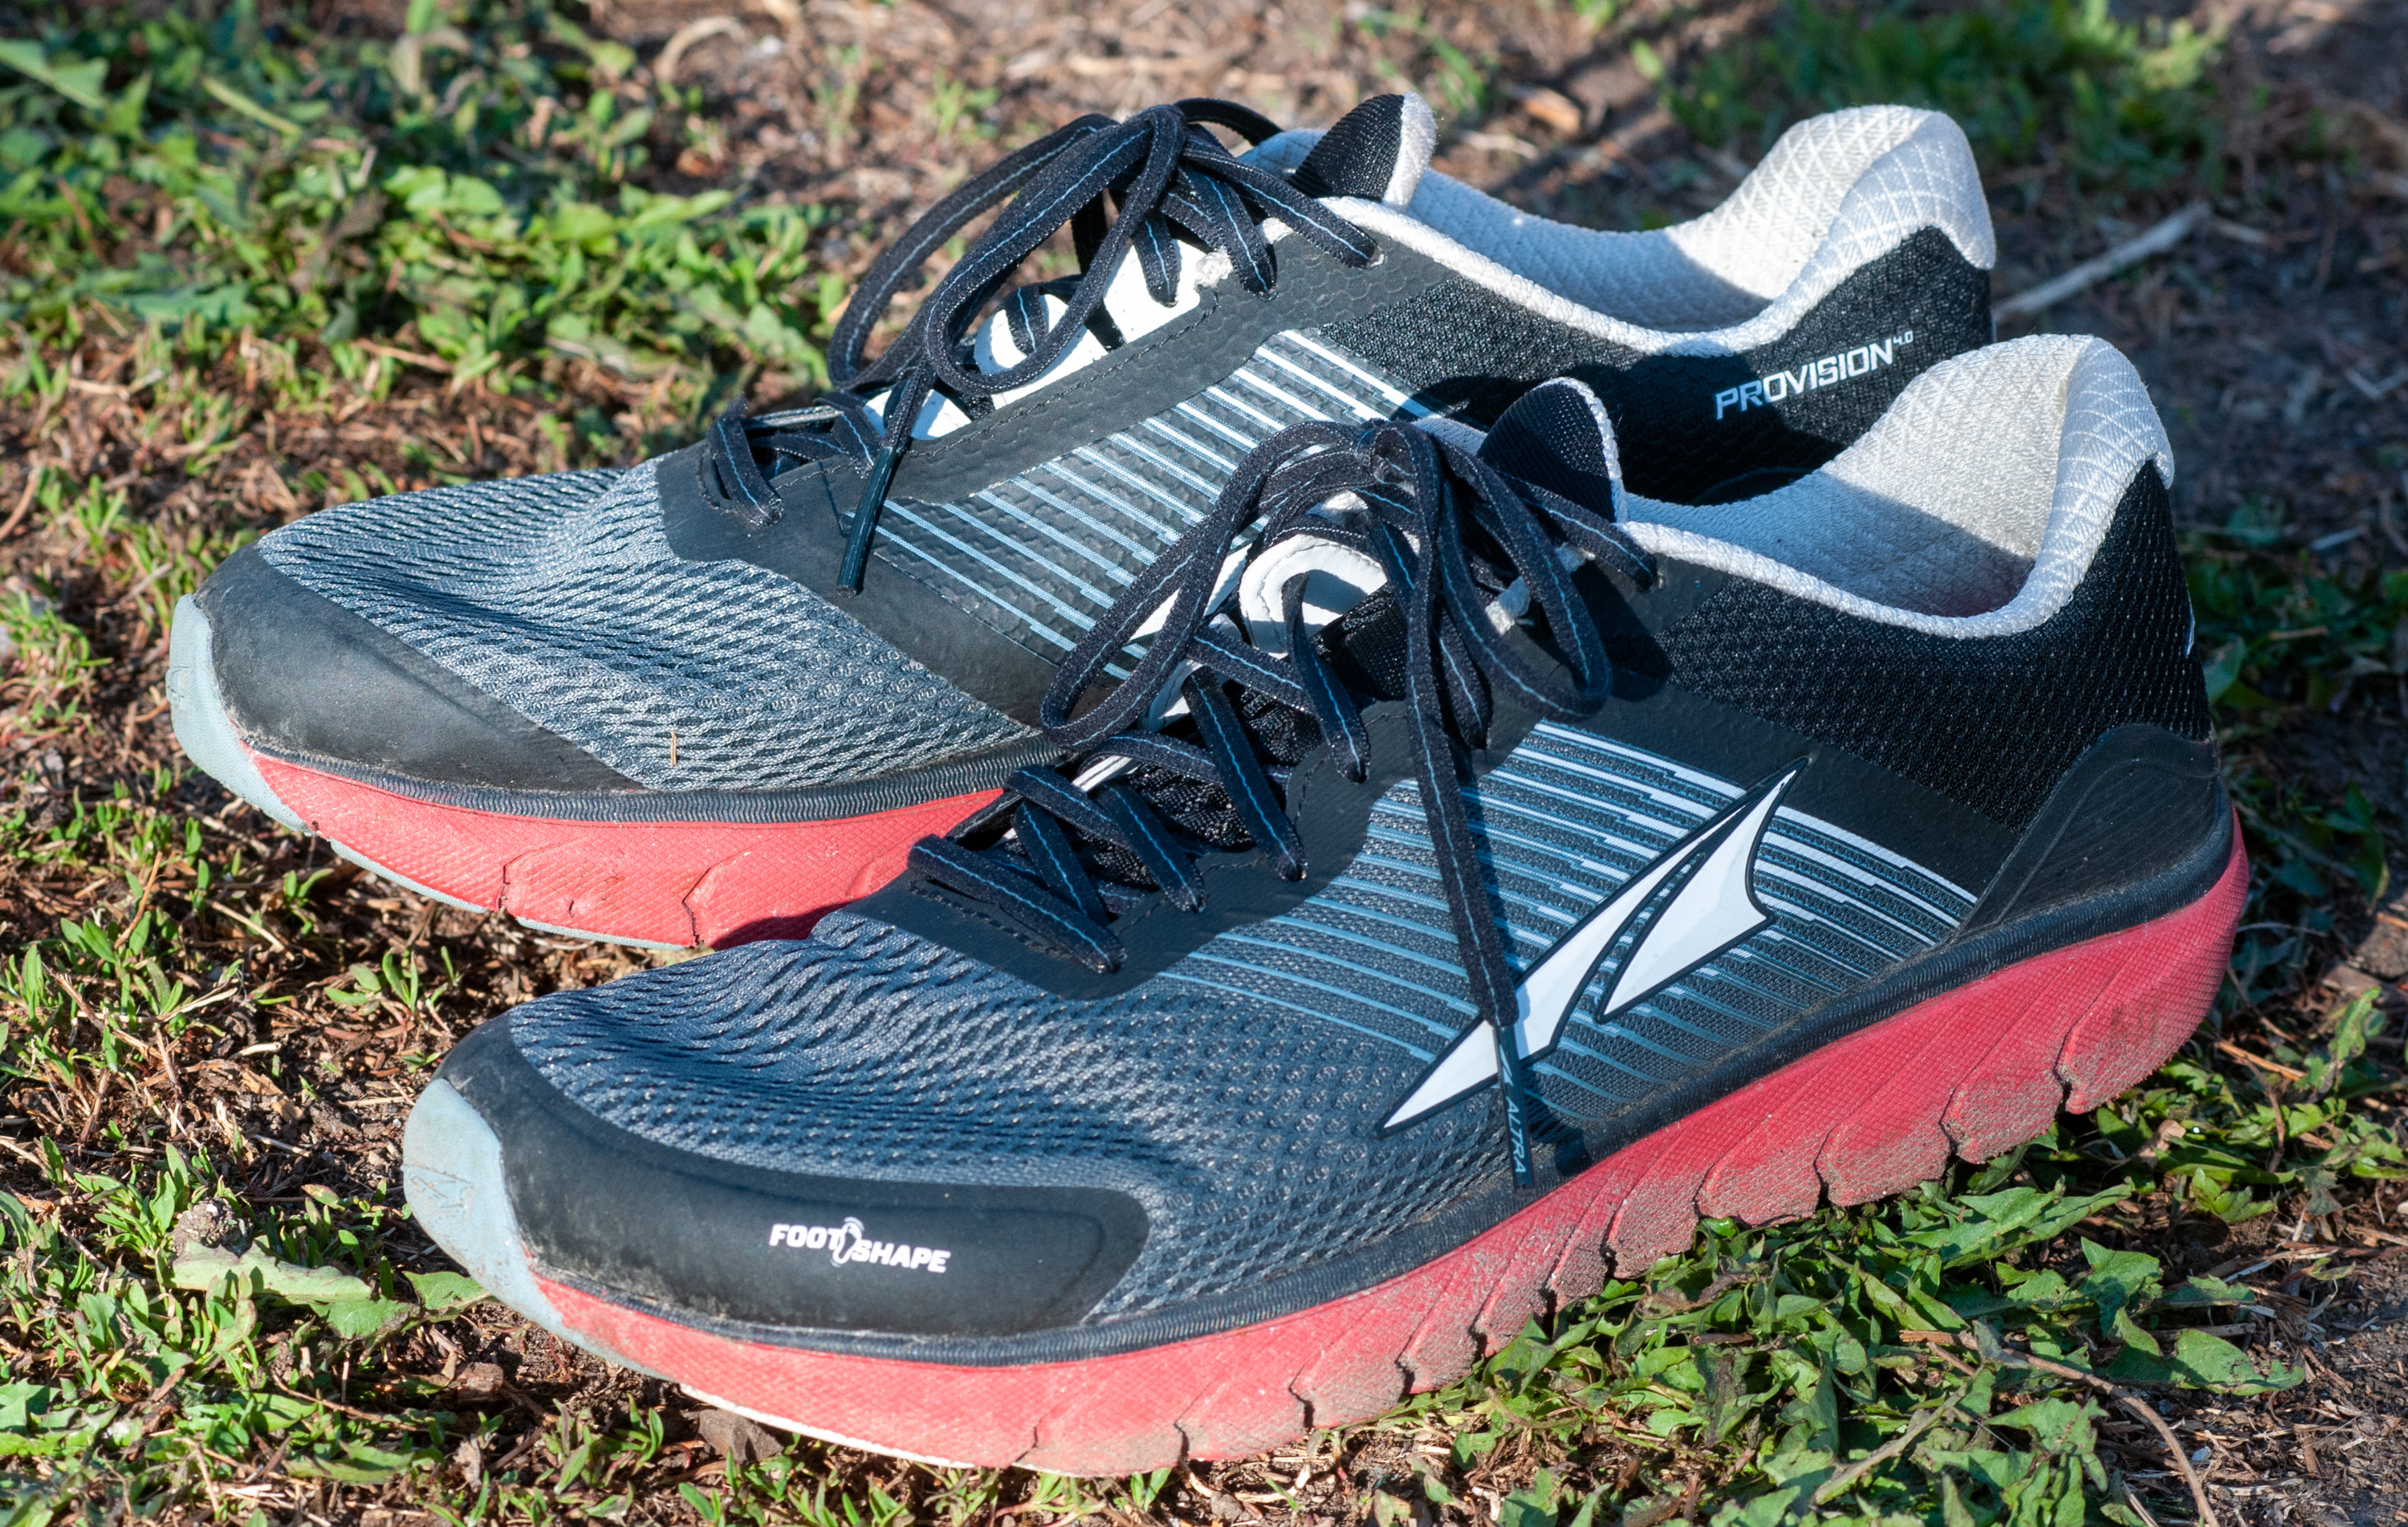 Altra Provision 4 Running Shoe Review The Secret S In The Lacing Gearjunkie